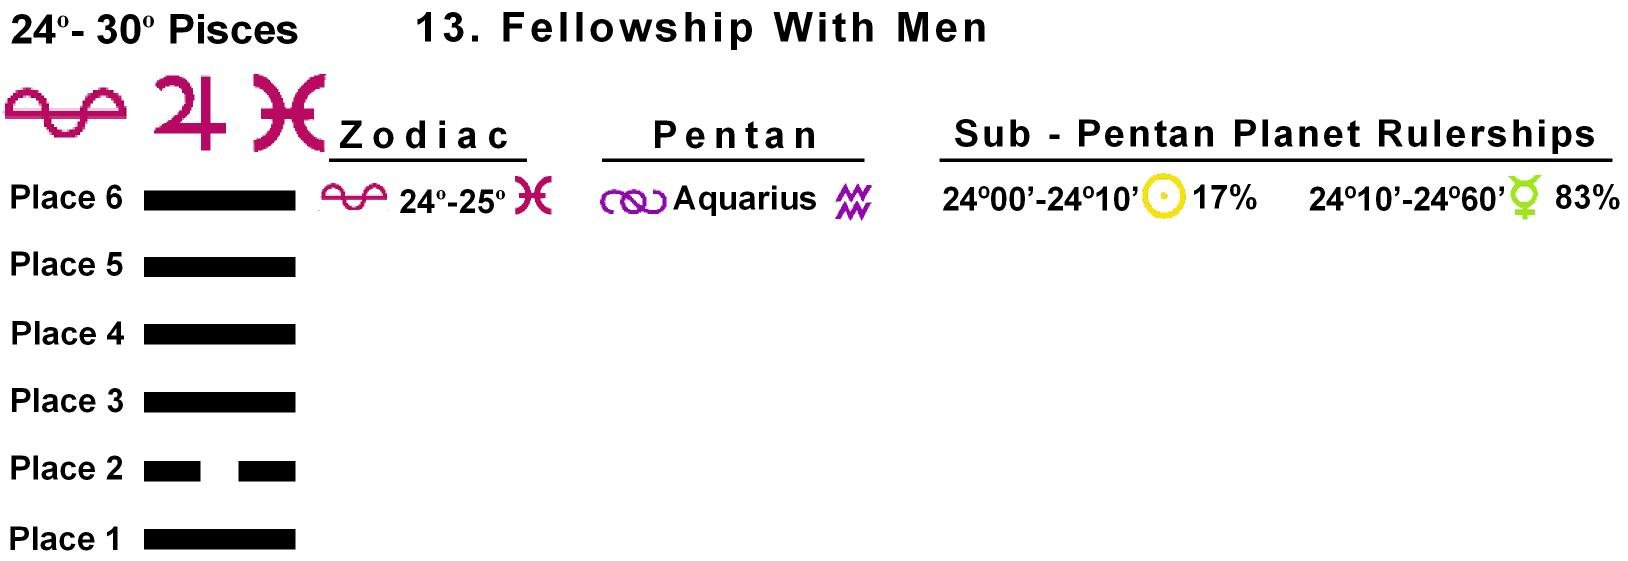 Pent-lines-12PI 24-25 Hx-13 Fellowship With Men